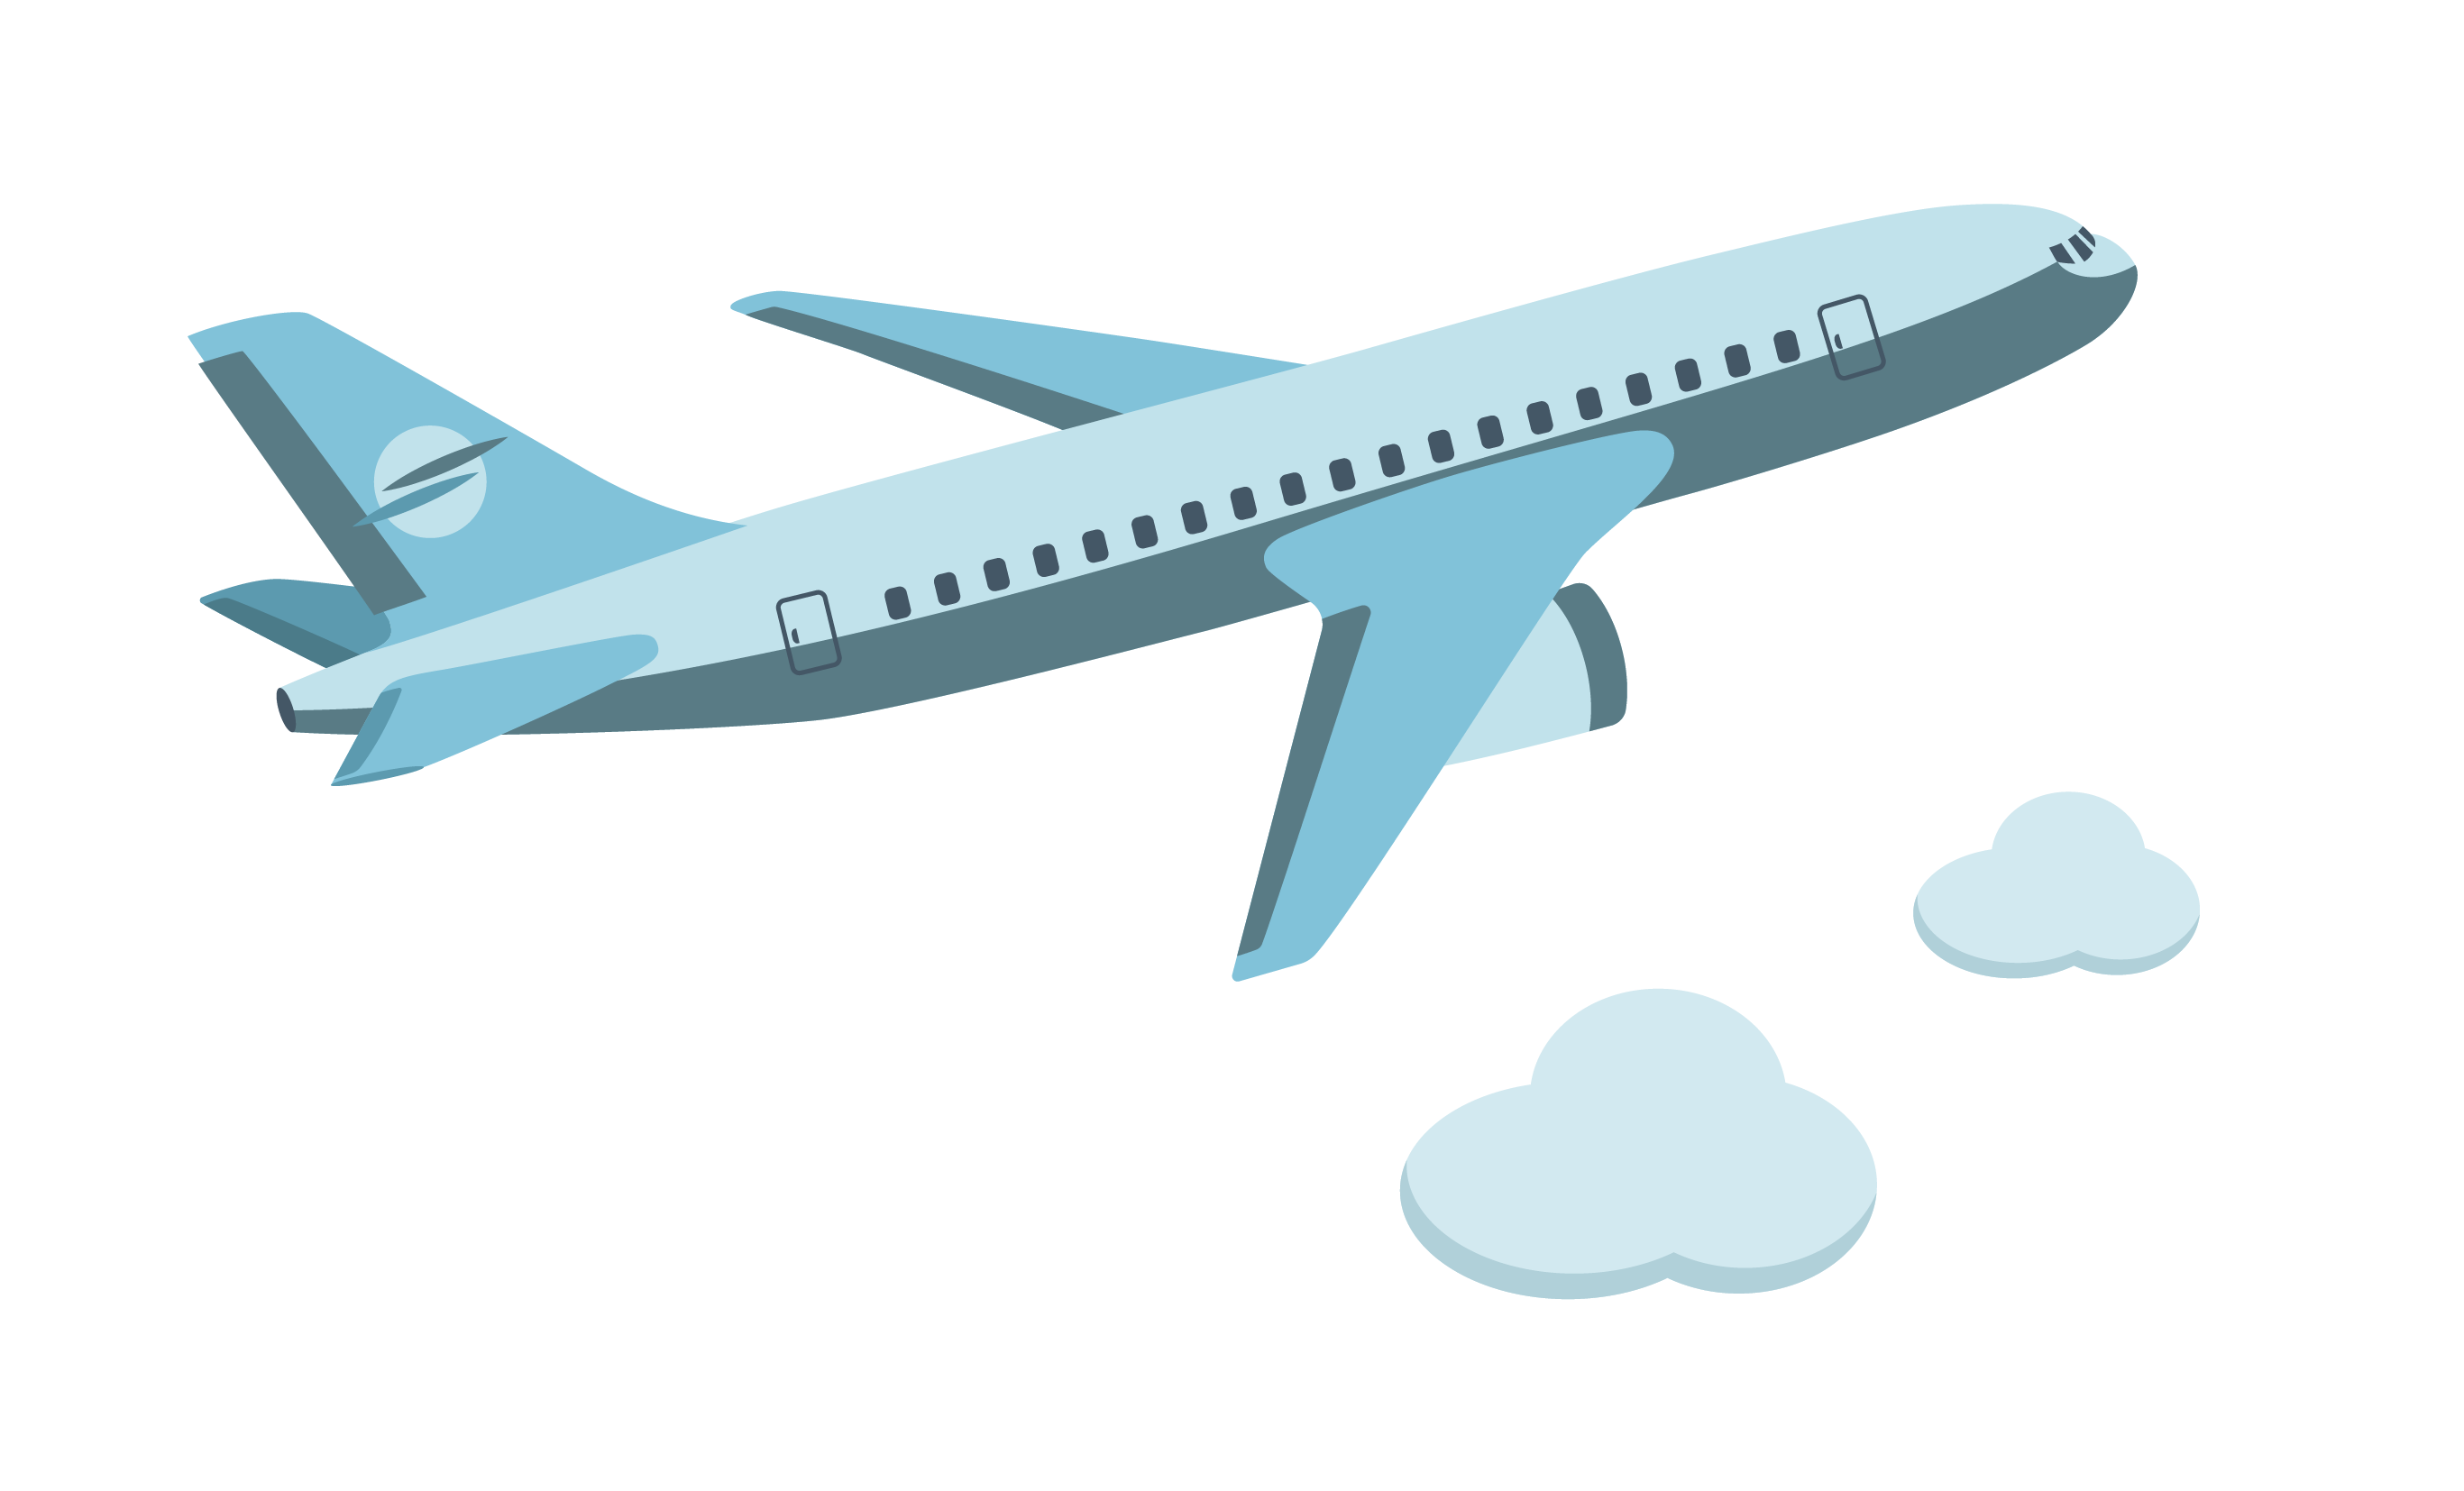 Cartoon airplane png. Aircraft icon vector flying